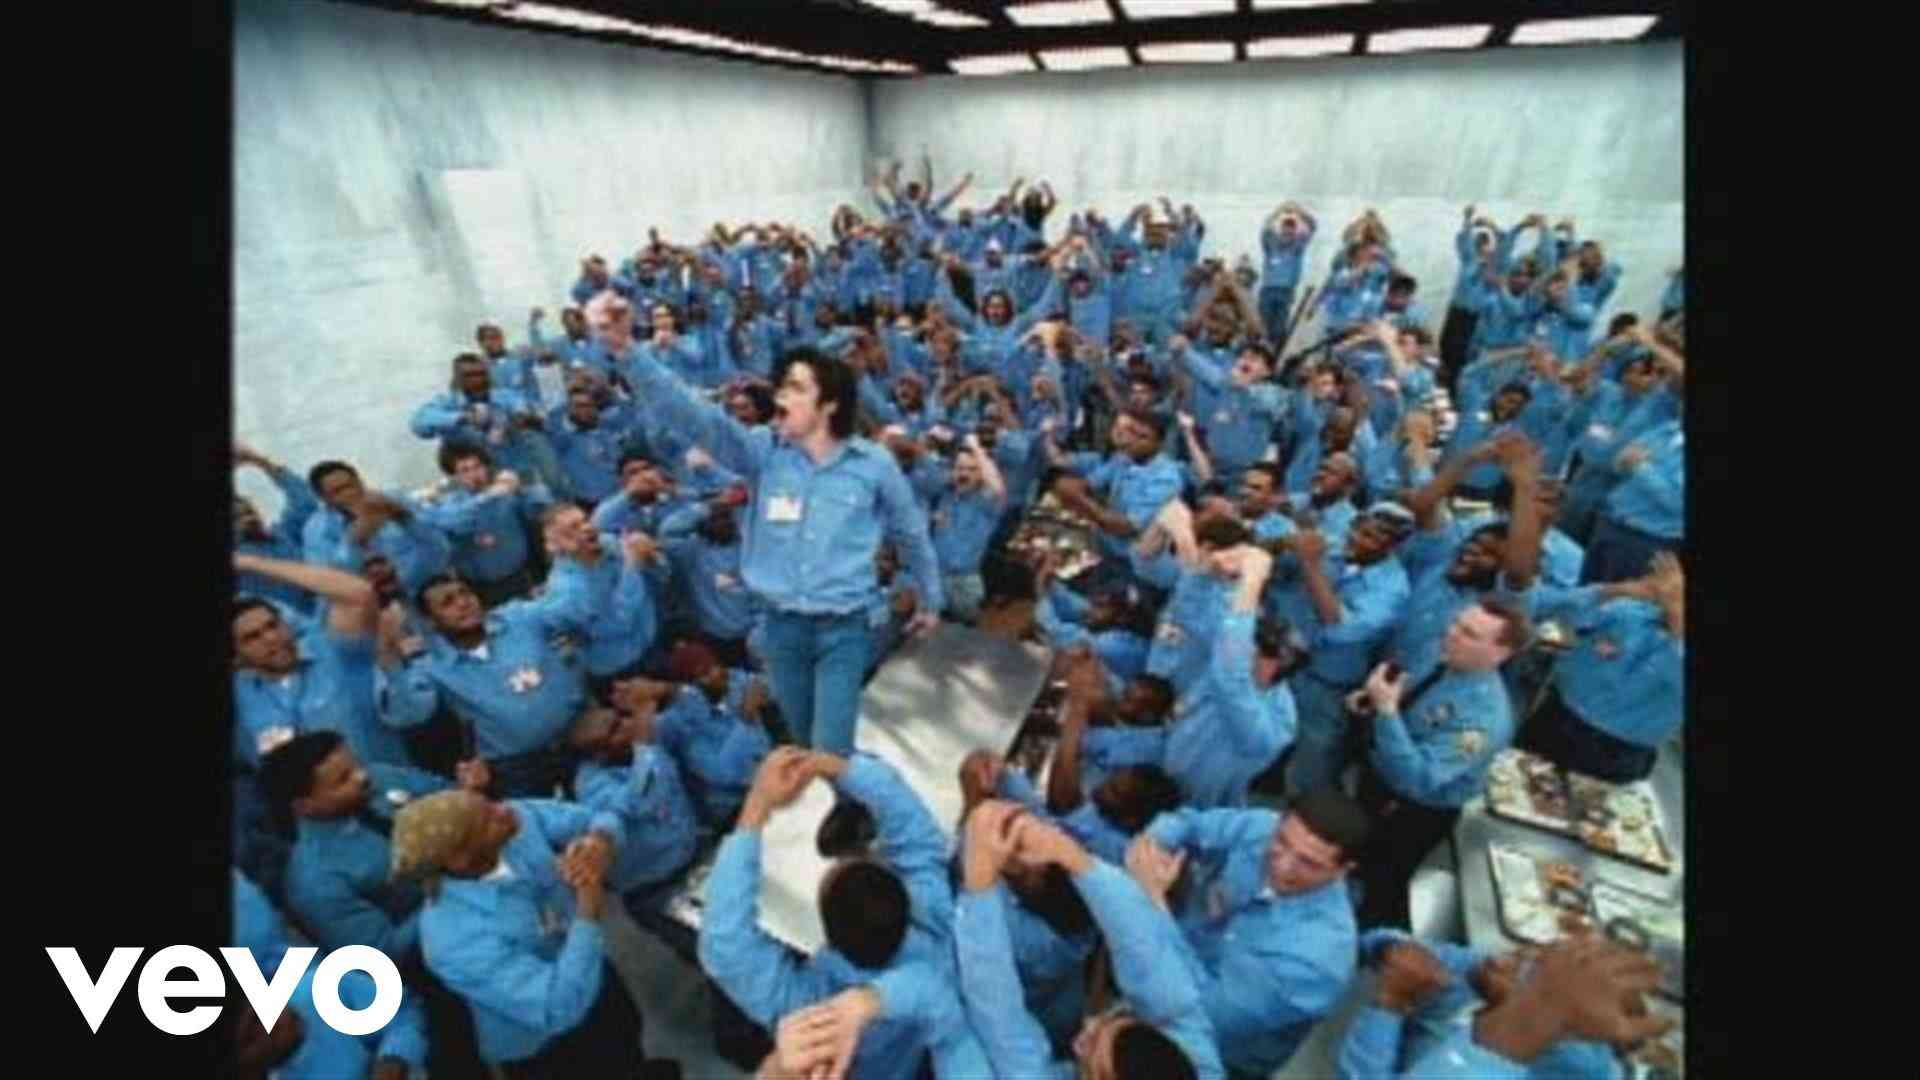 Michael Jackson - They Don't Care About Us (Prison Version) (Official Video) - YouTube